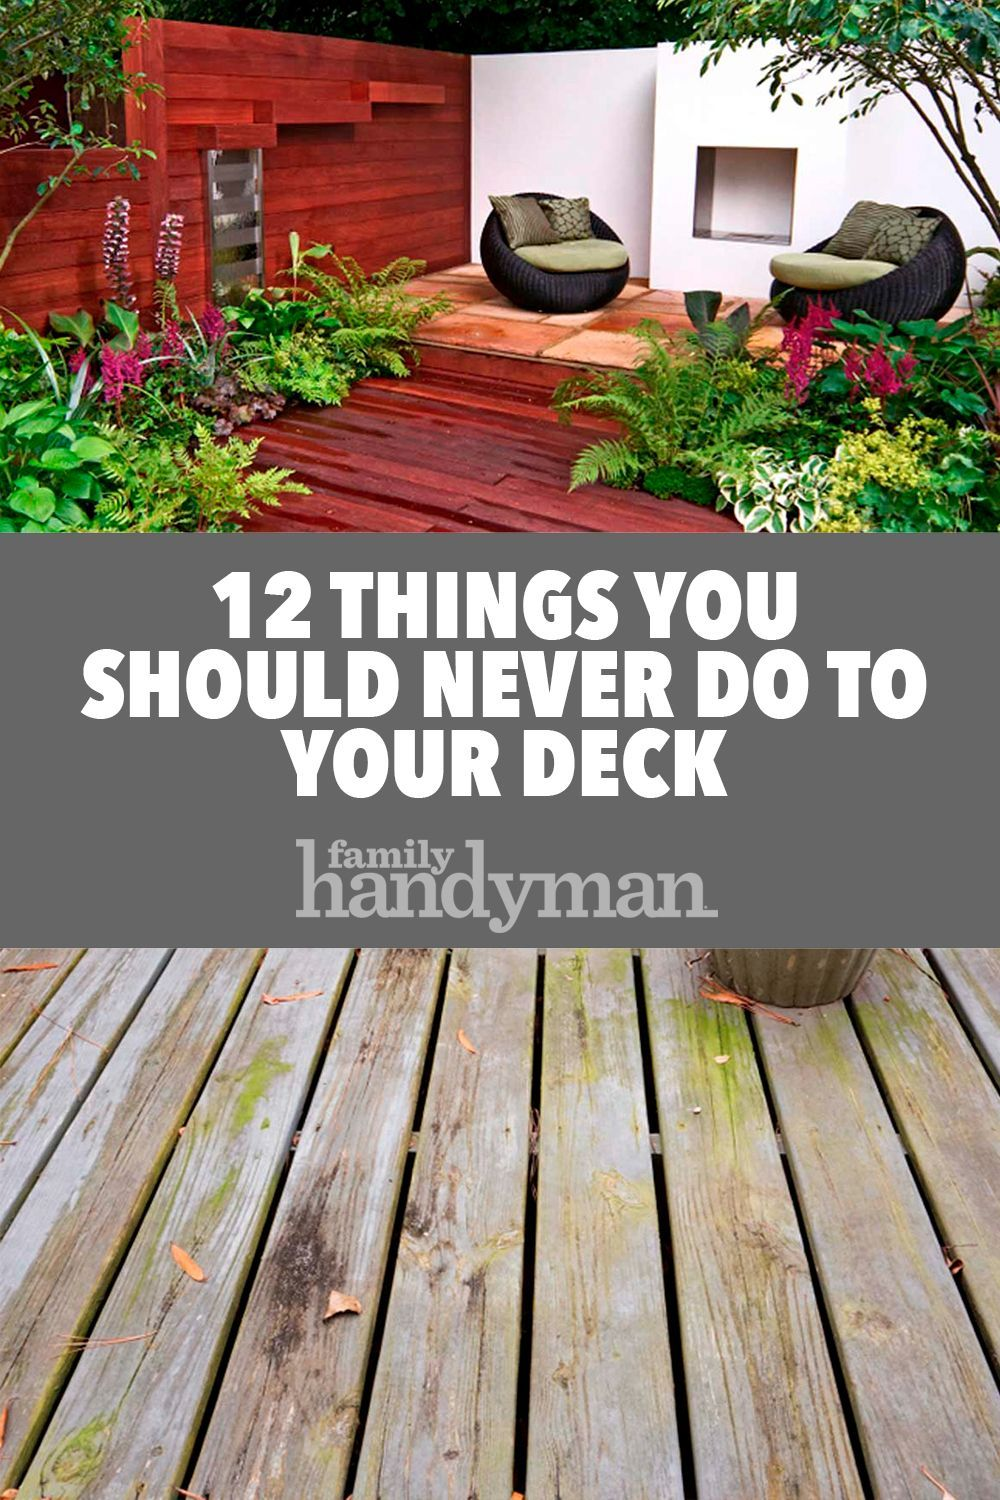 12 Things You Should Never Do To Your Deck Woodworking Plans Tv Stand Woodworking Plans House Renovation Projects